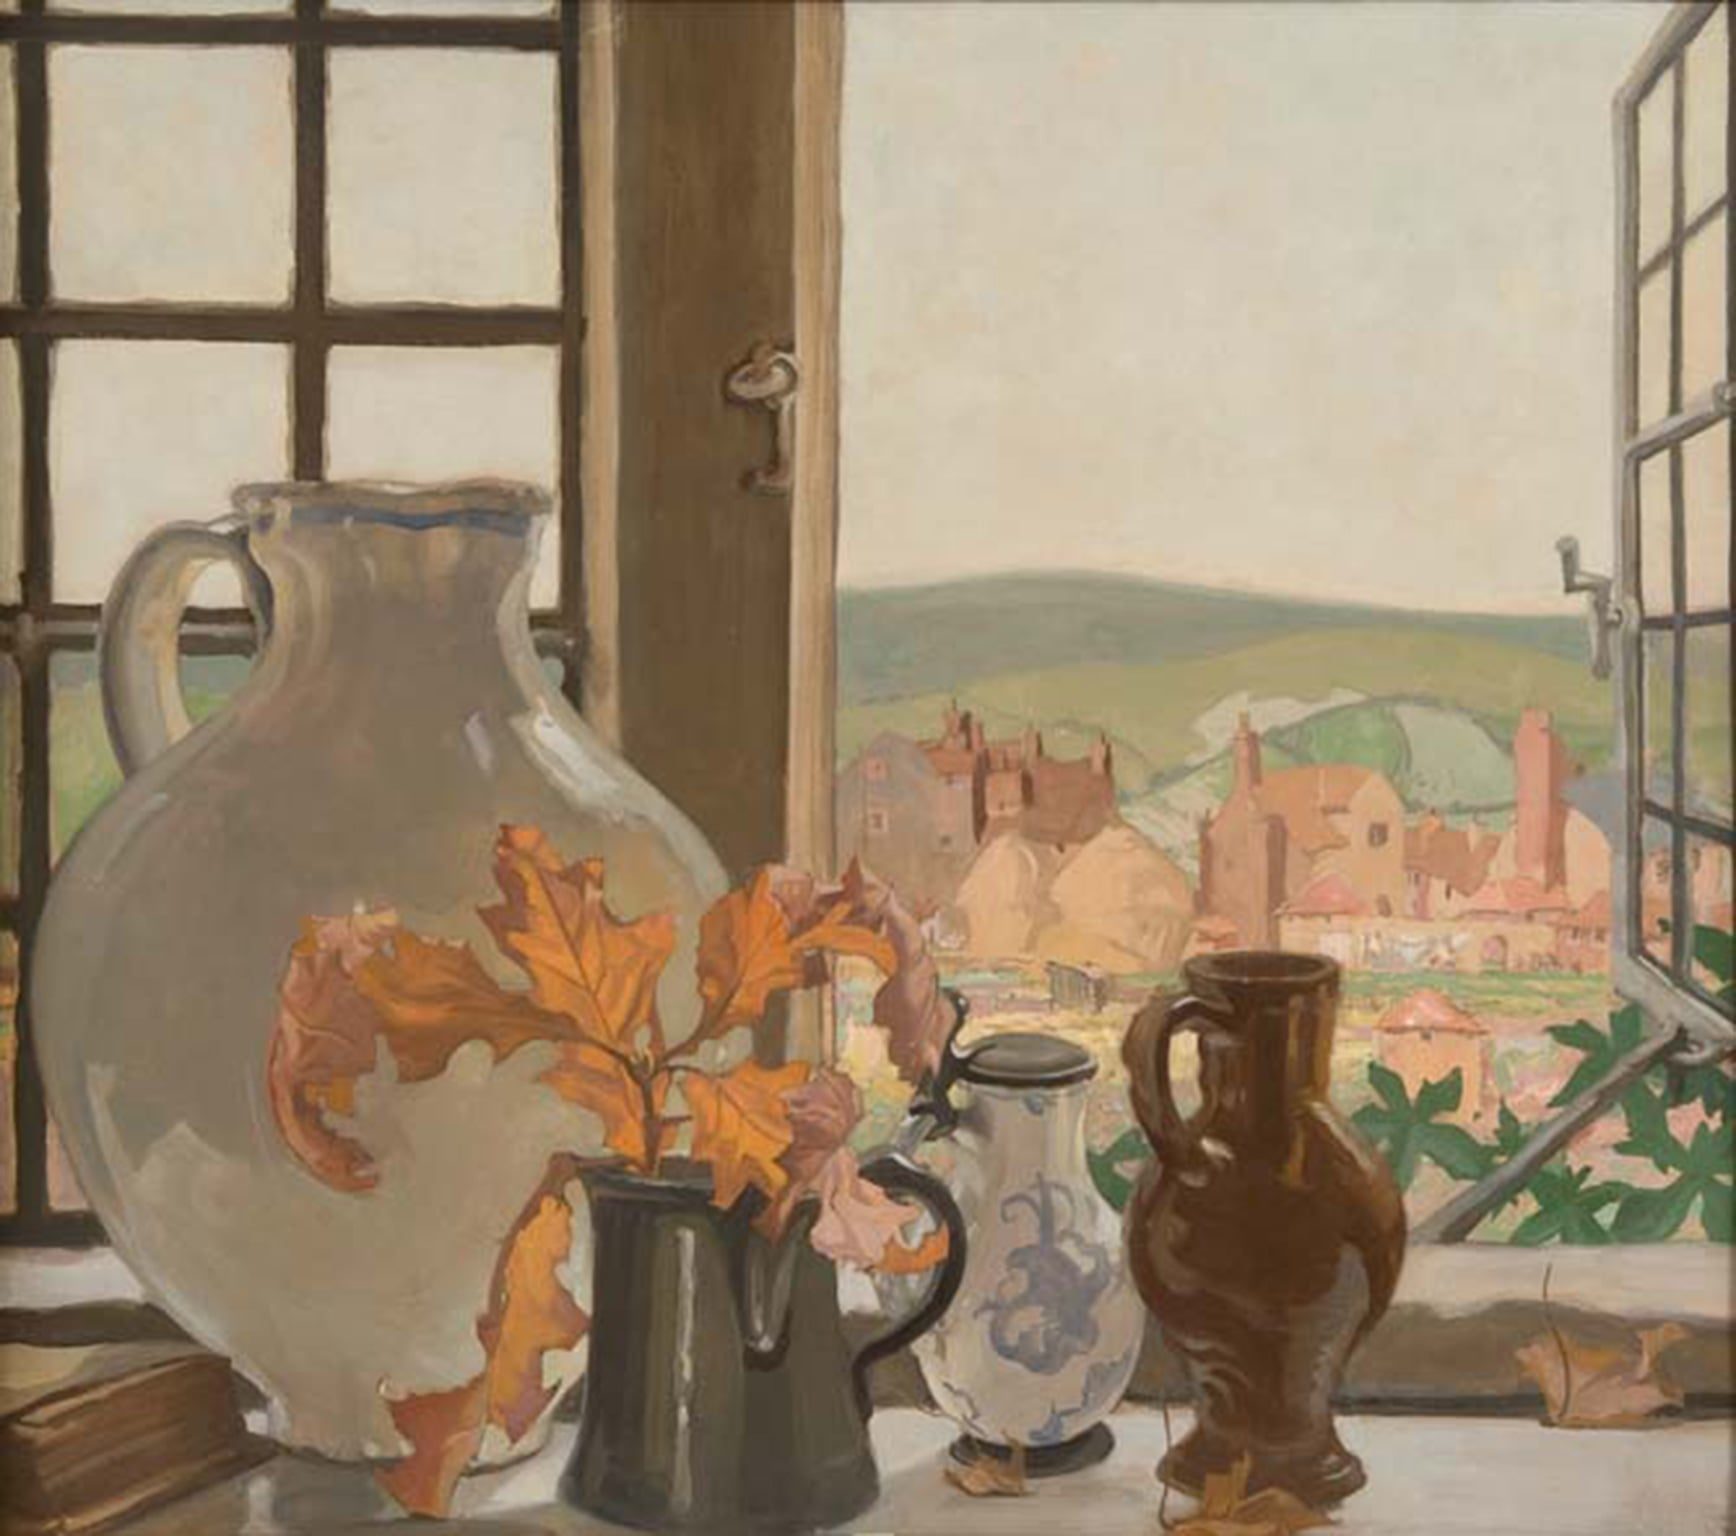 The gallery's 'first treasure', Frank Brangwyn's From my Window at Ditchling, c. 1925 - © The Estate of Frank Brangwyn